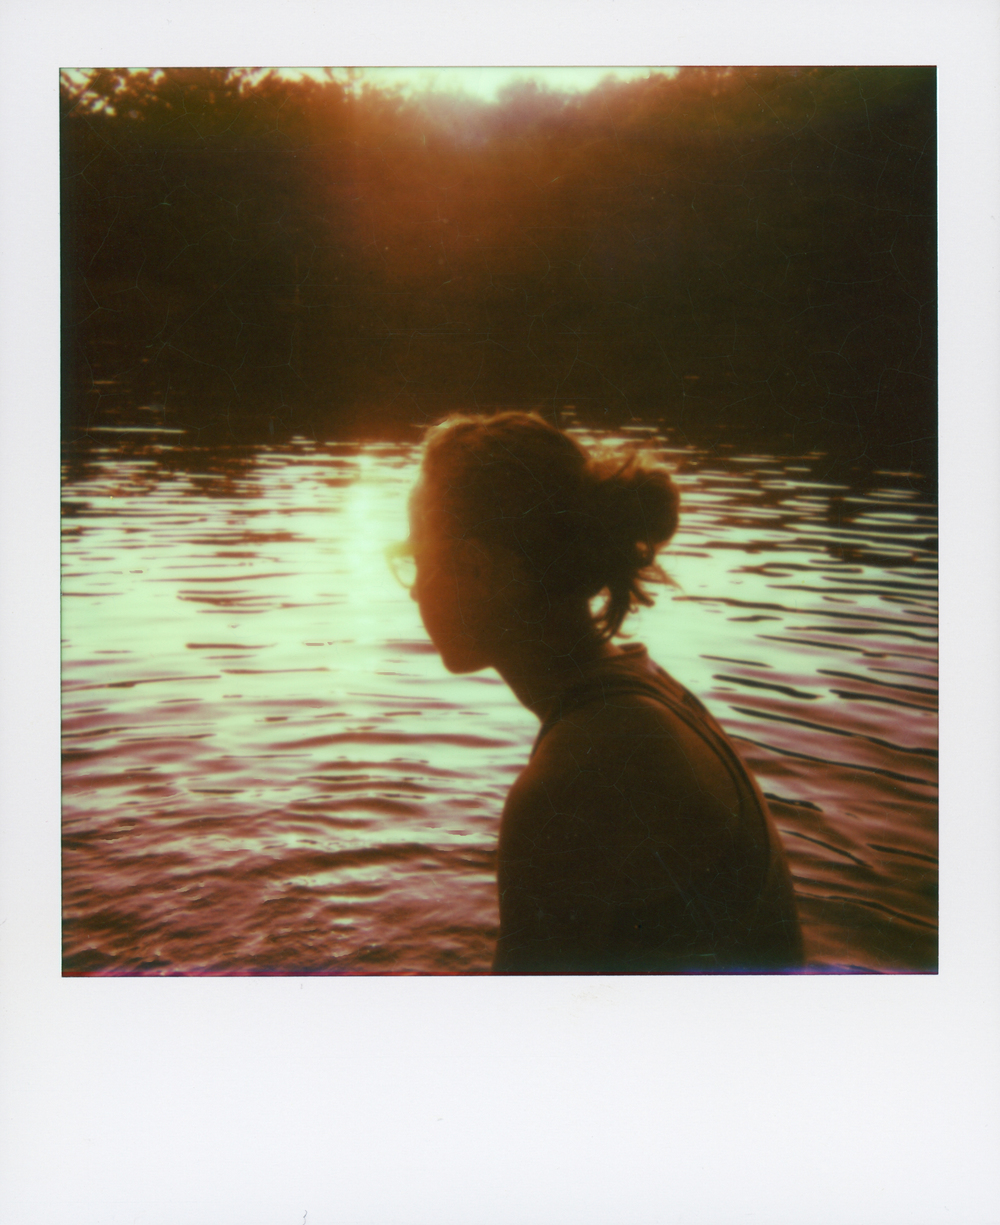 polaroid summer 13003.jpg